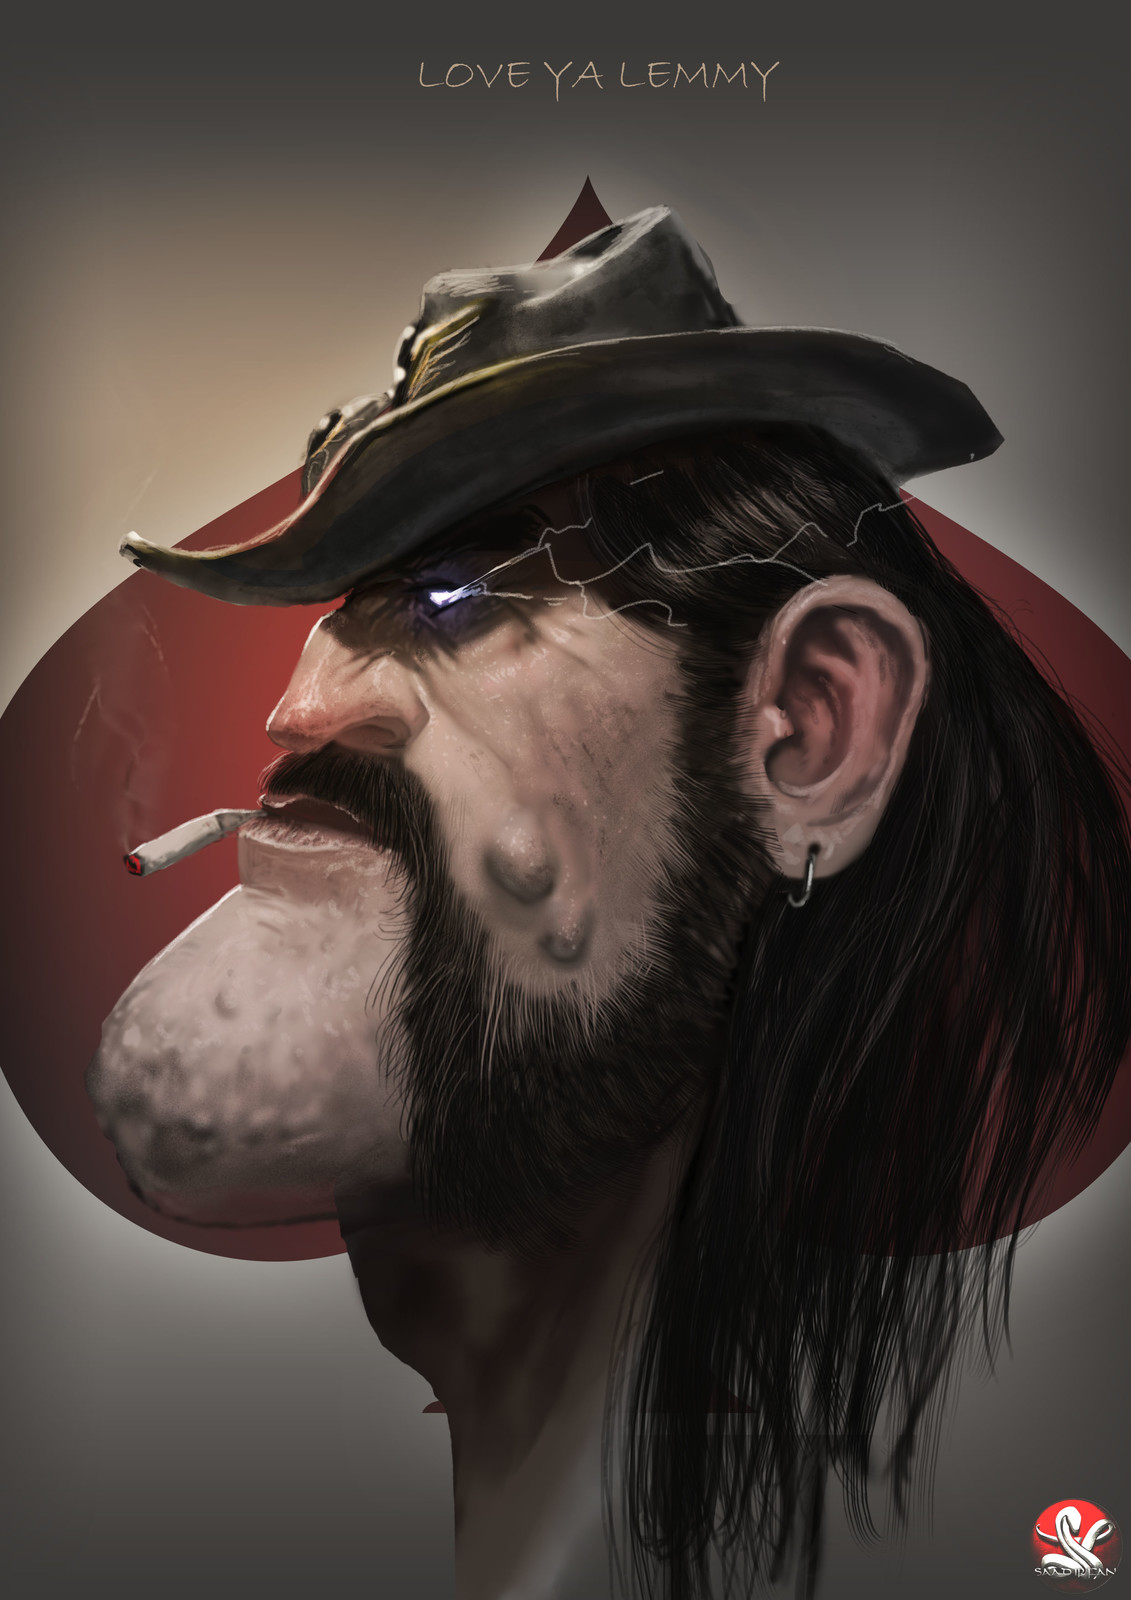 Love ya Lemmy